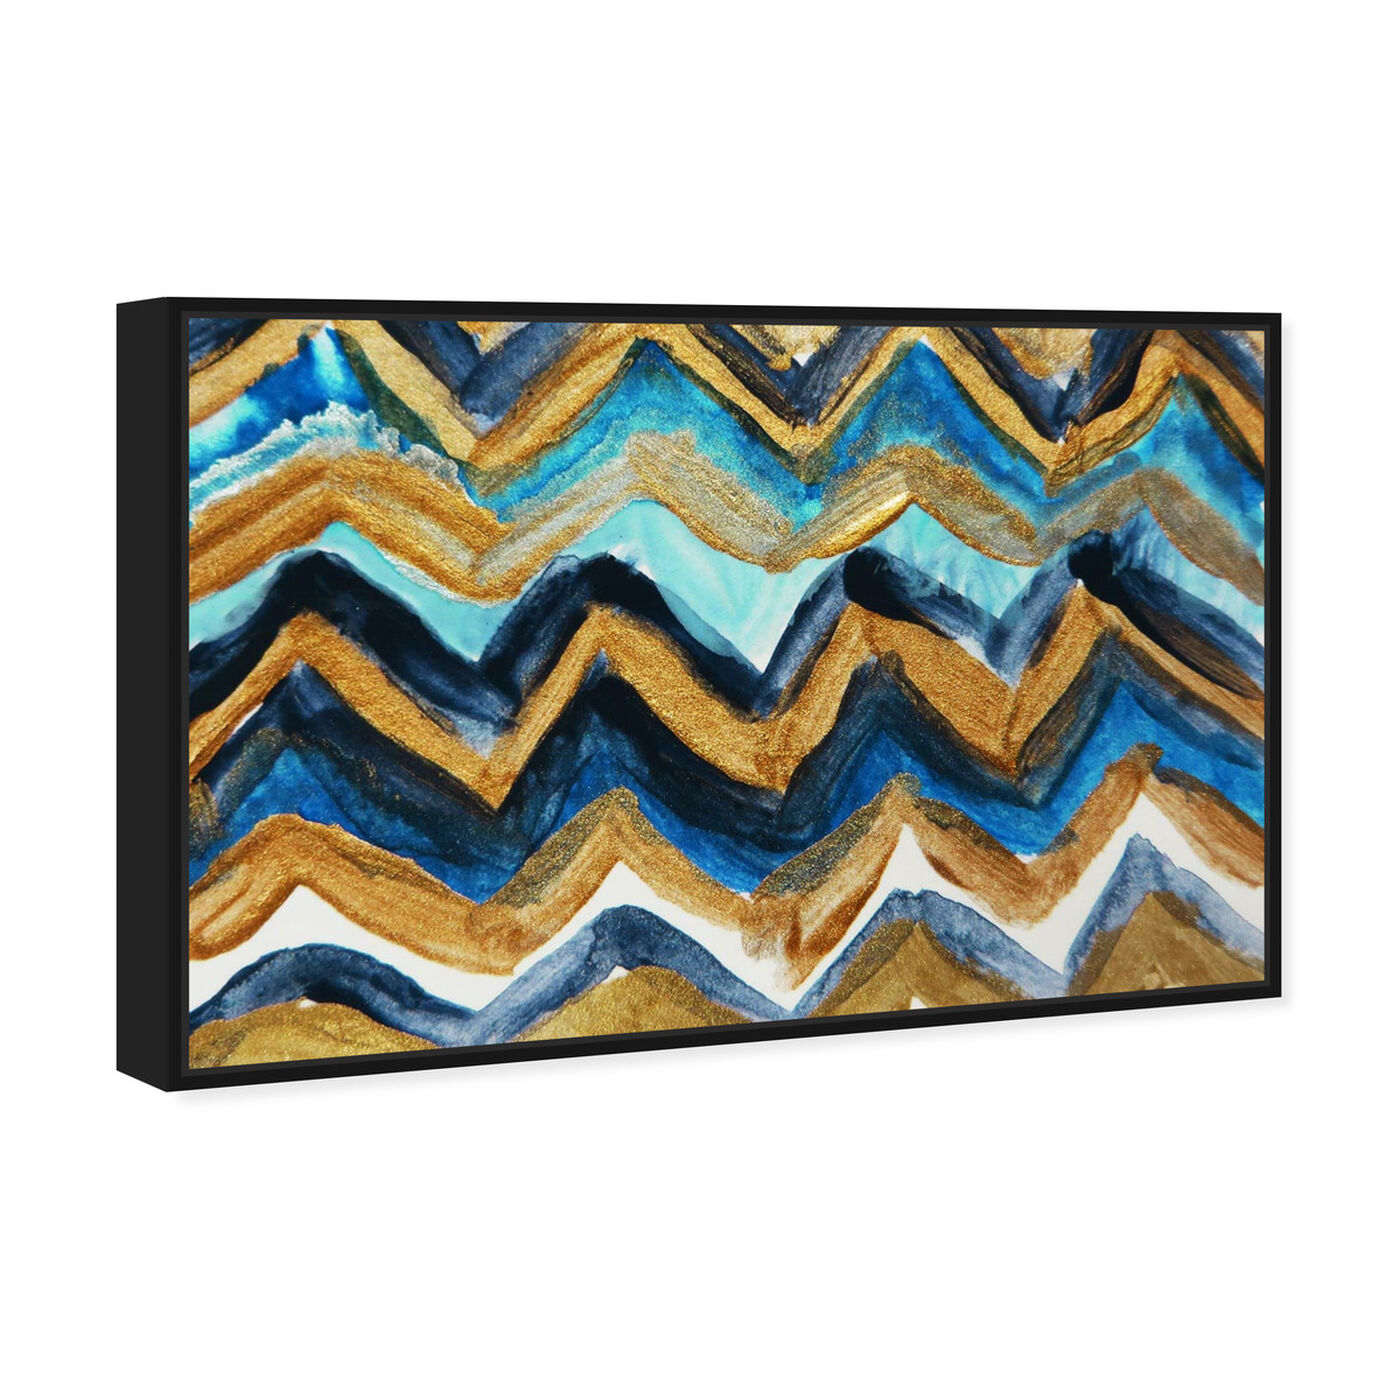 Angled view of French Riviera - Signature Collection featuring abstract and paint art.